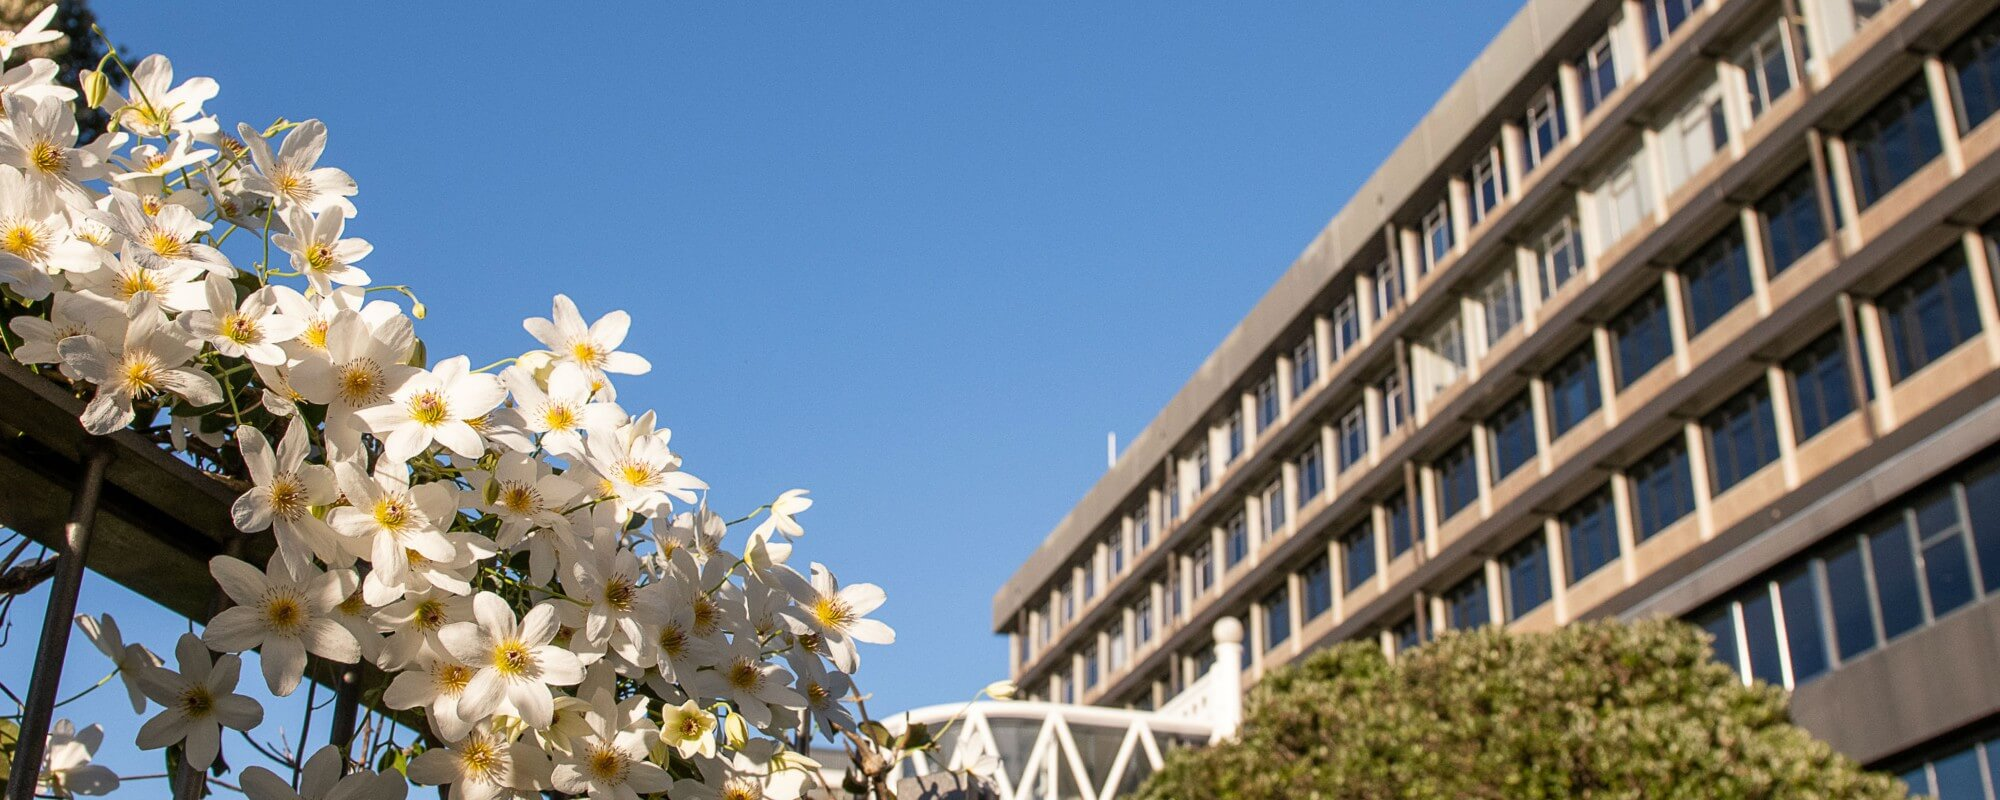 Side of Rankine Brown Library building with blue sky and white flowers in foreground.